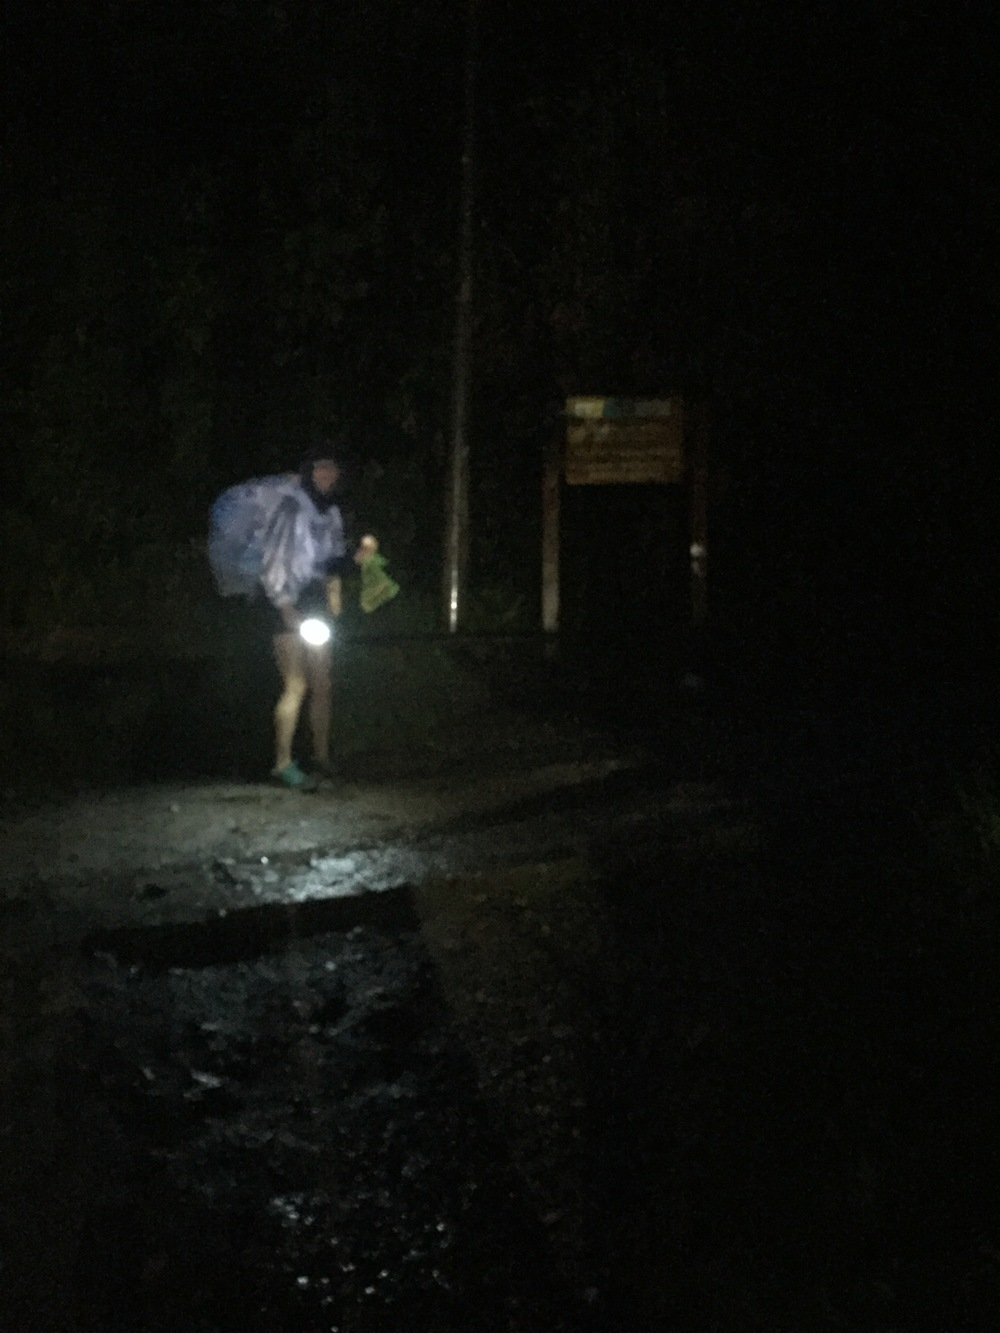 Last day of trek essentials: poncho, flashlight, and motivation.